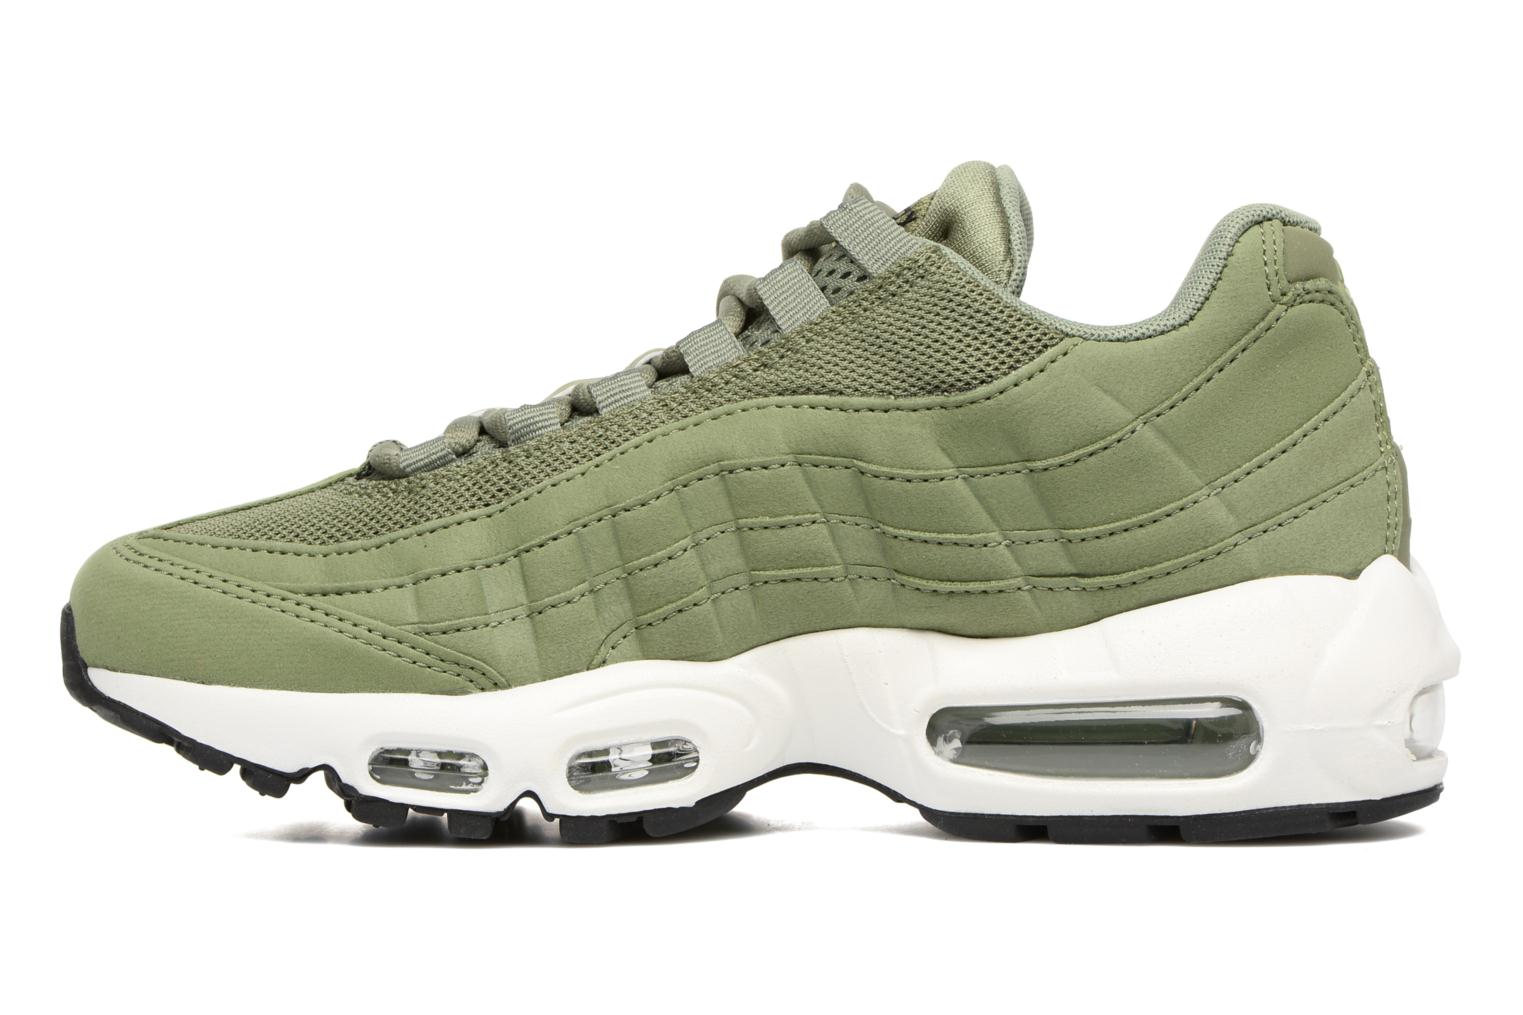 Barely Rose/Hot Punch-Vintage Wine-White Nike Wmns Air Max 95 (Rose)